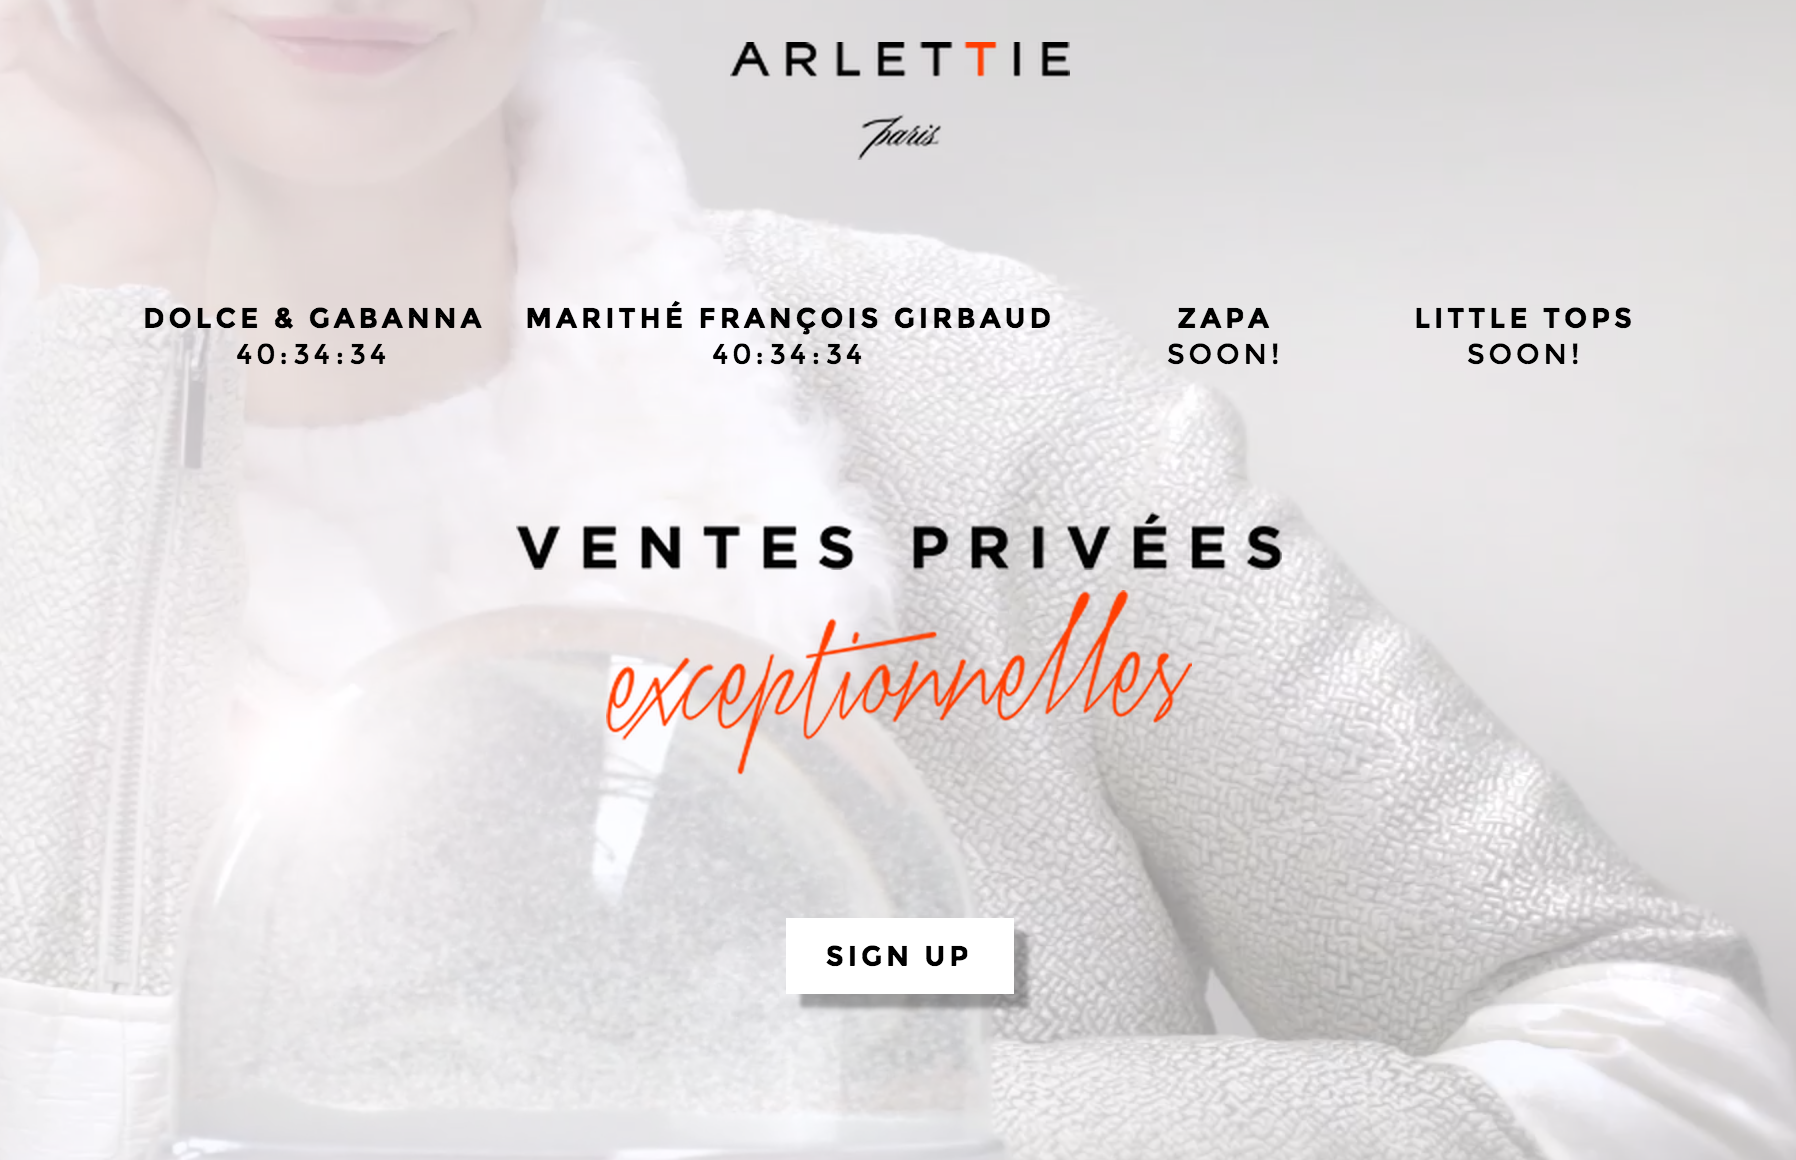 Arlettie Paris